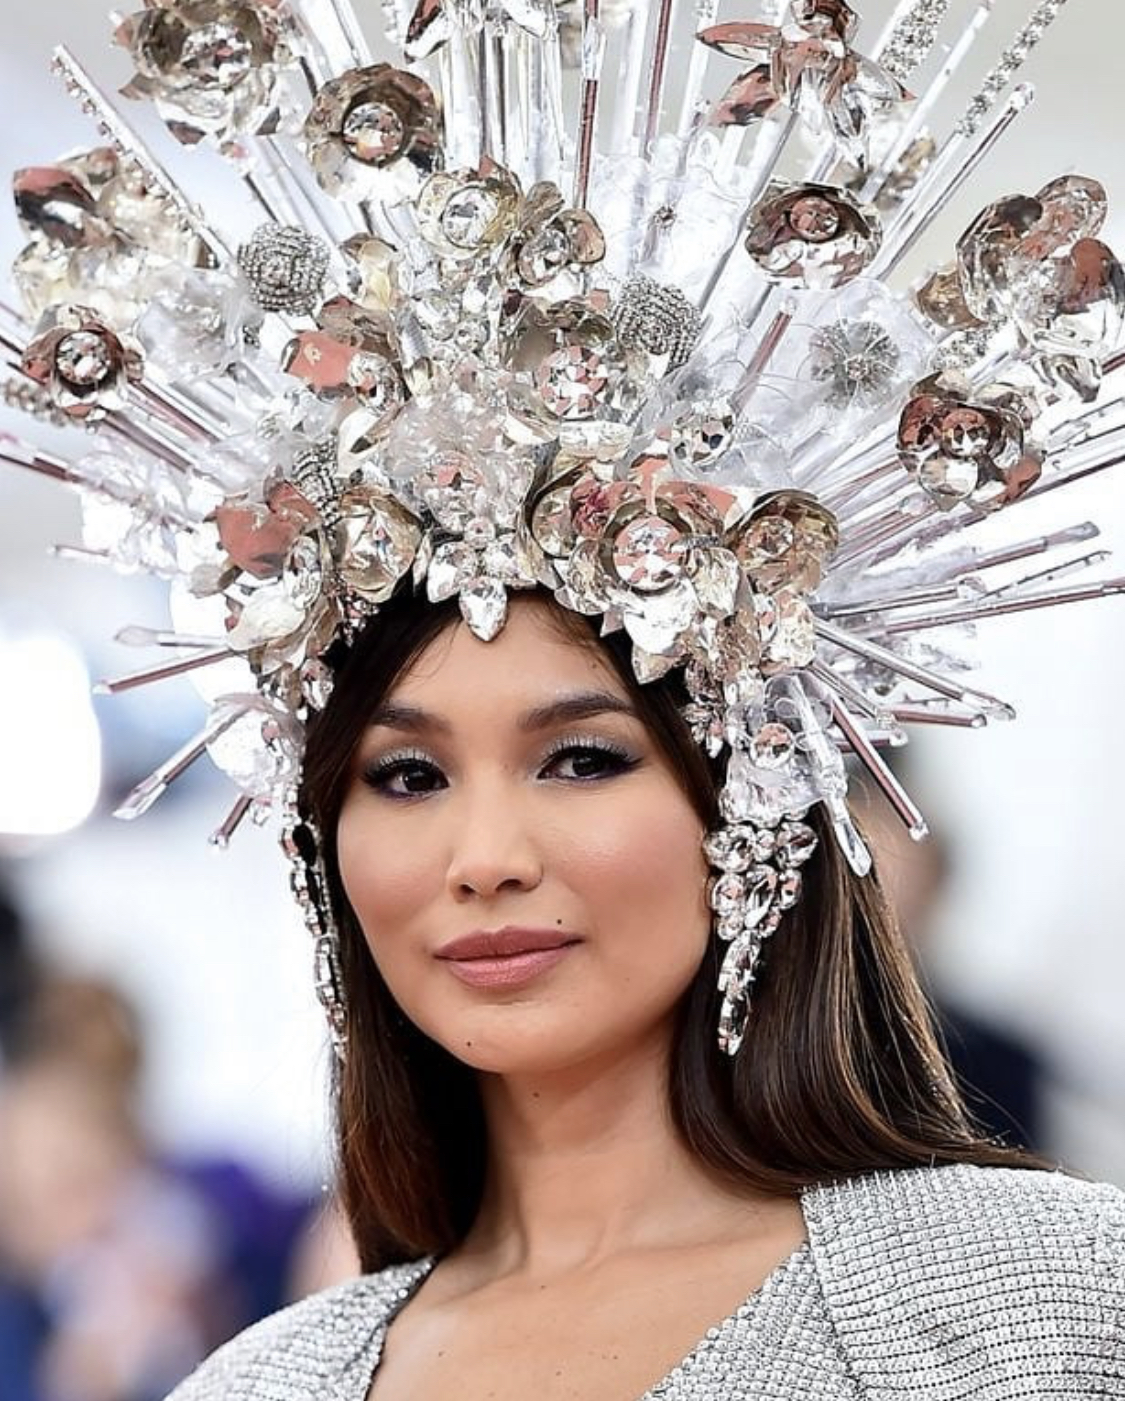 GEMMA CHAN- A SILVER SIREN WITH THIS ELIZABETH TAYLOR MEETS CHER INSPIRED LOOK